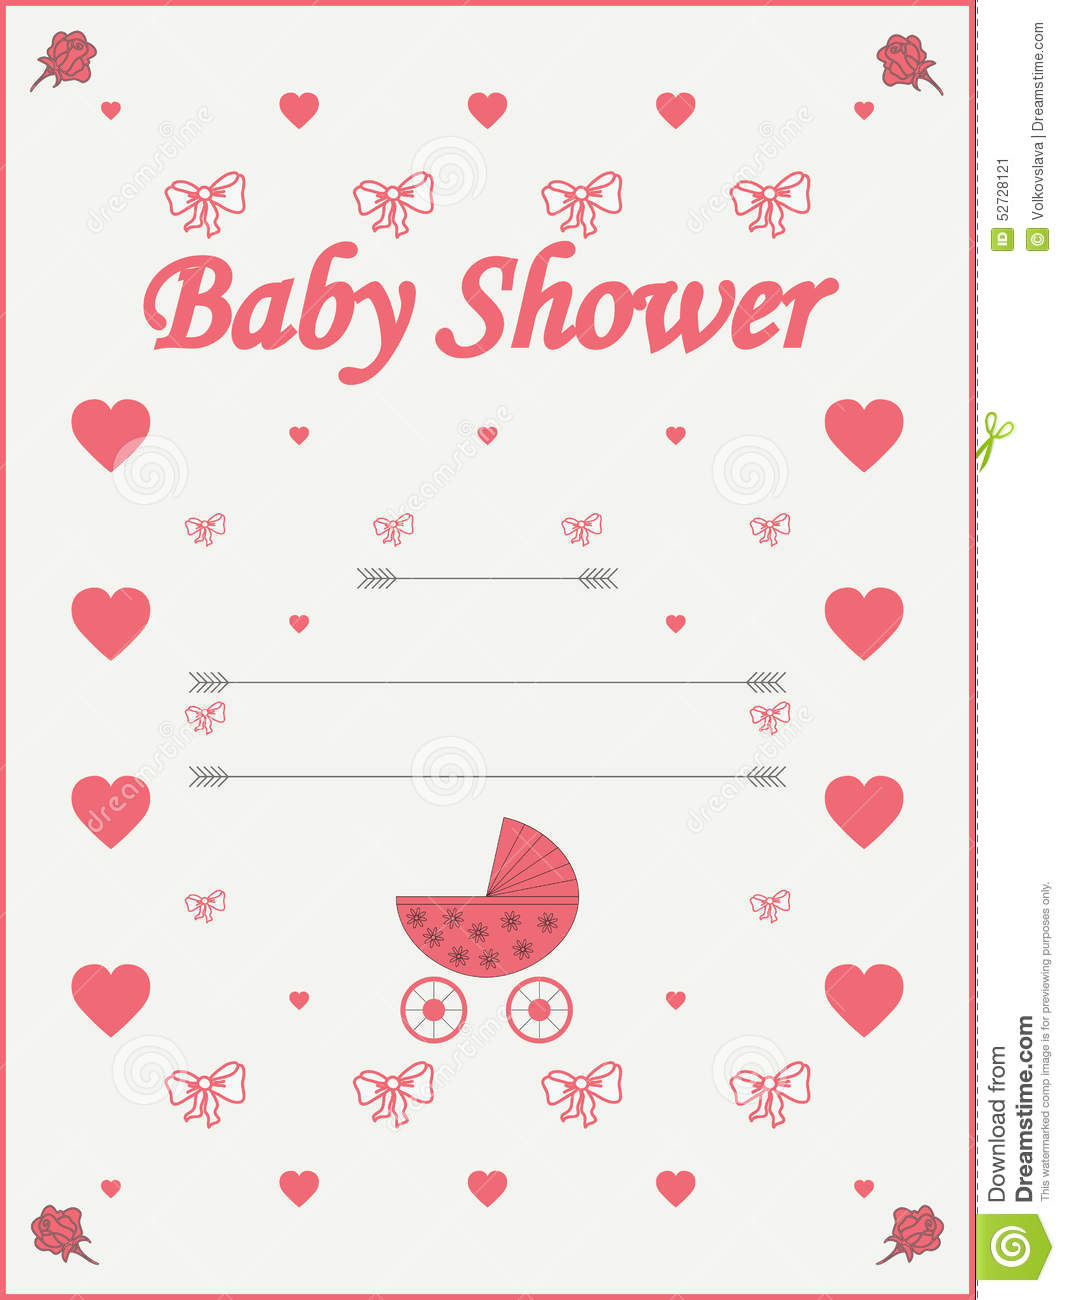 Baby Shower Invitations Backgrounds